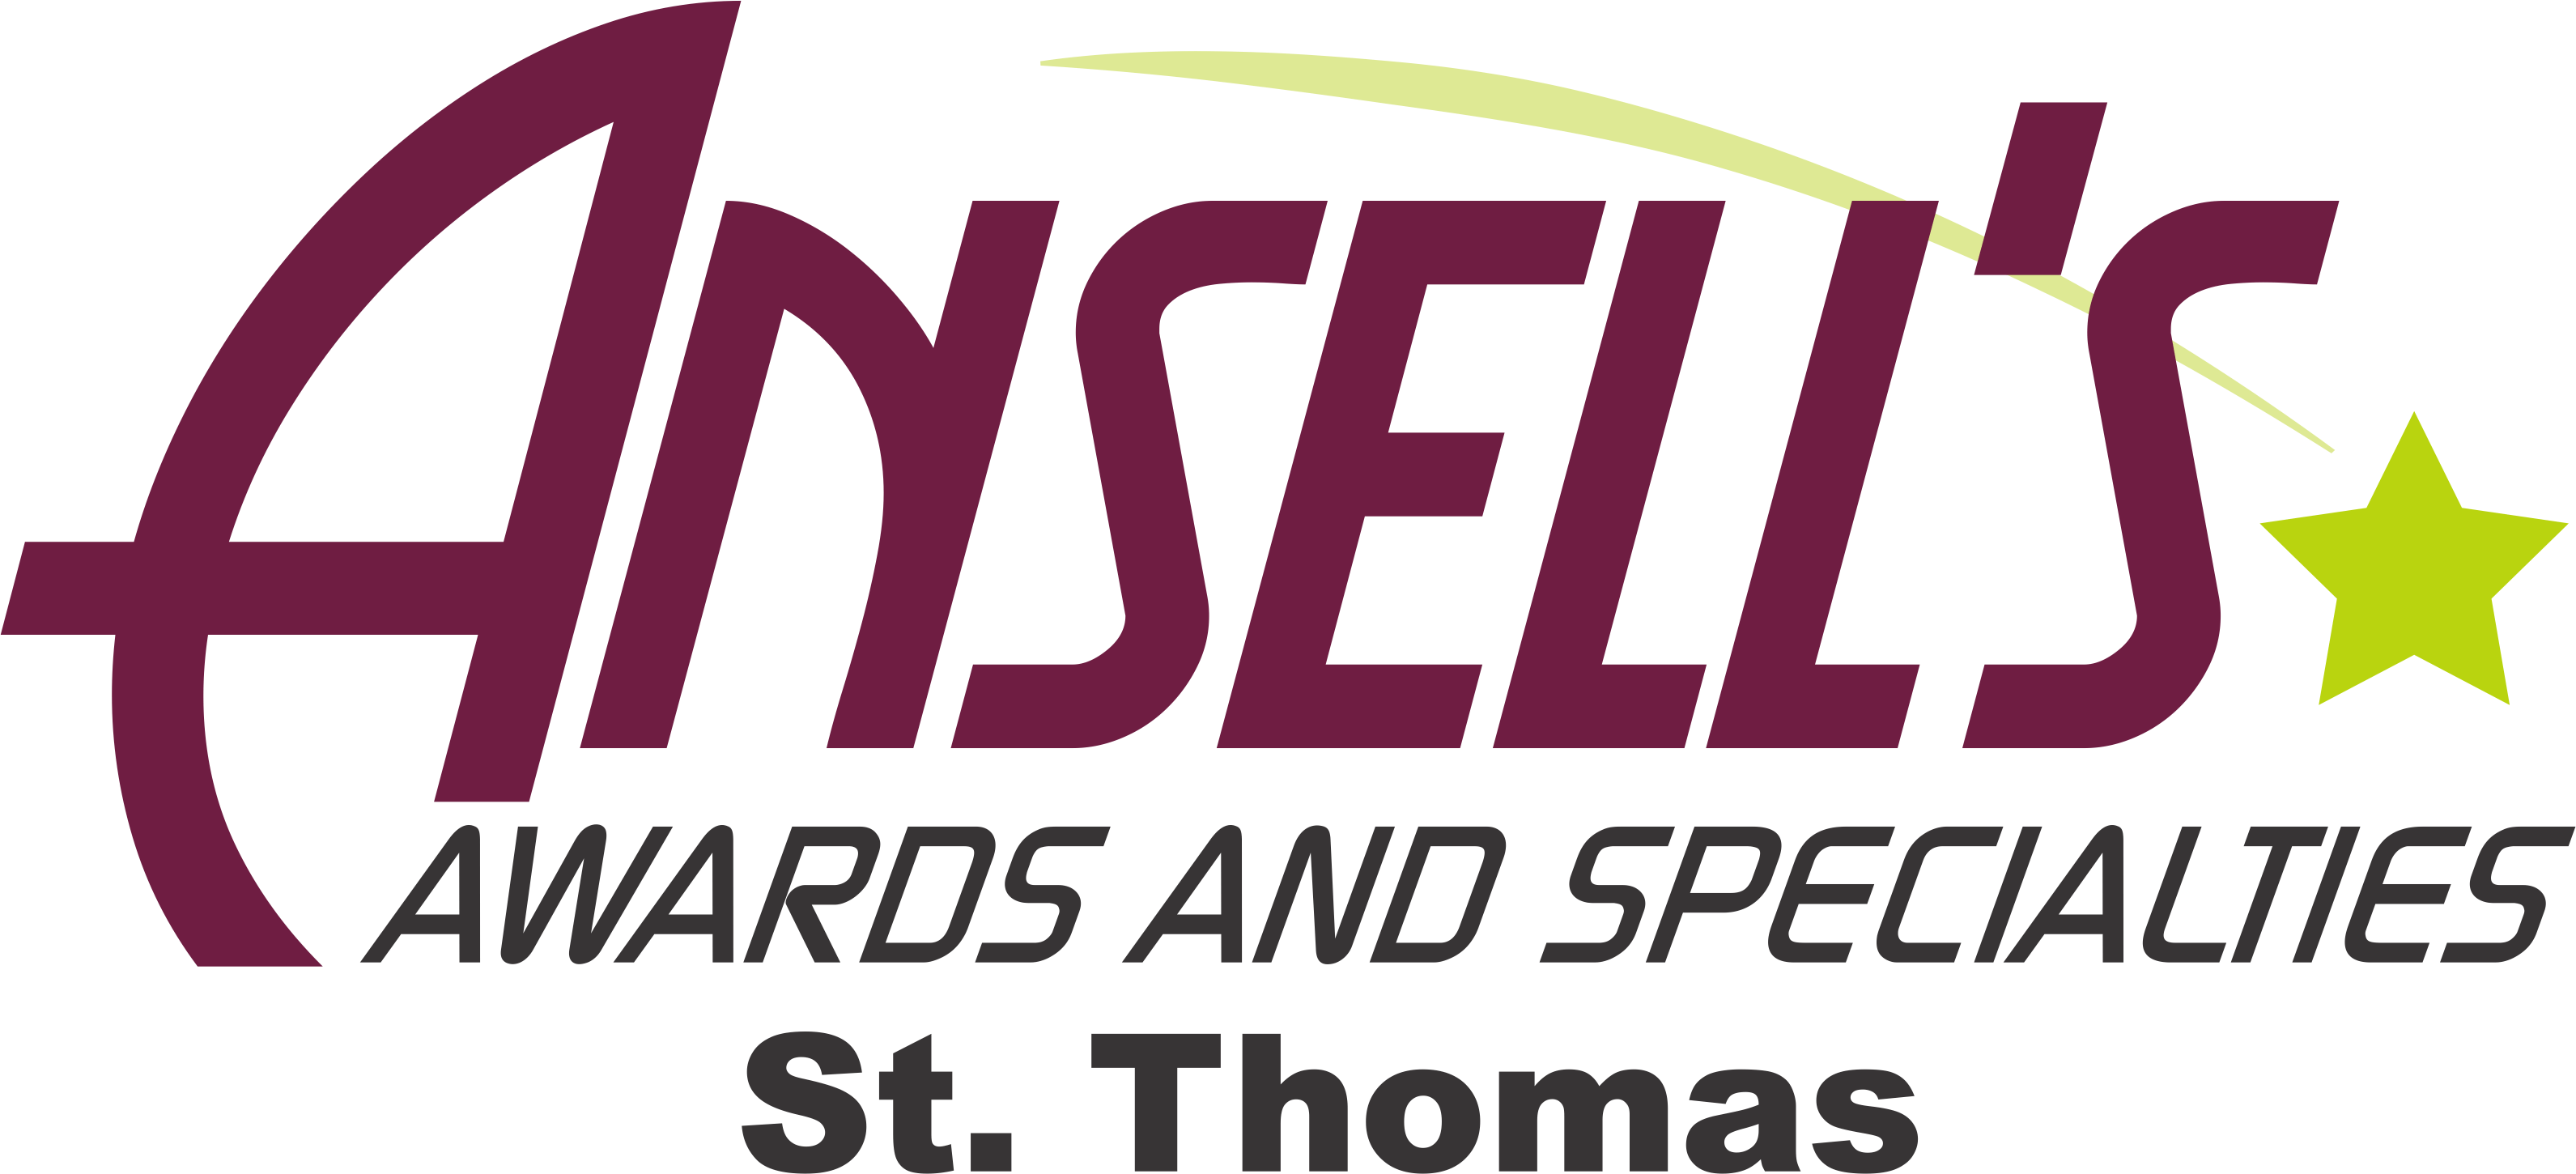 Ansells Awards